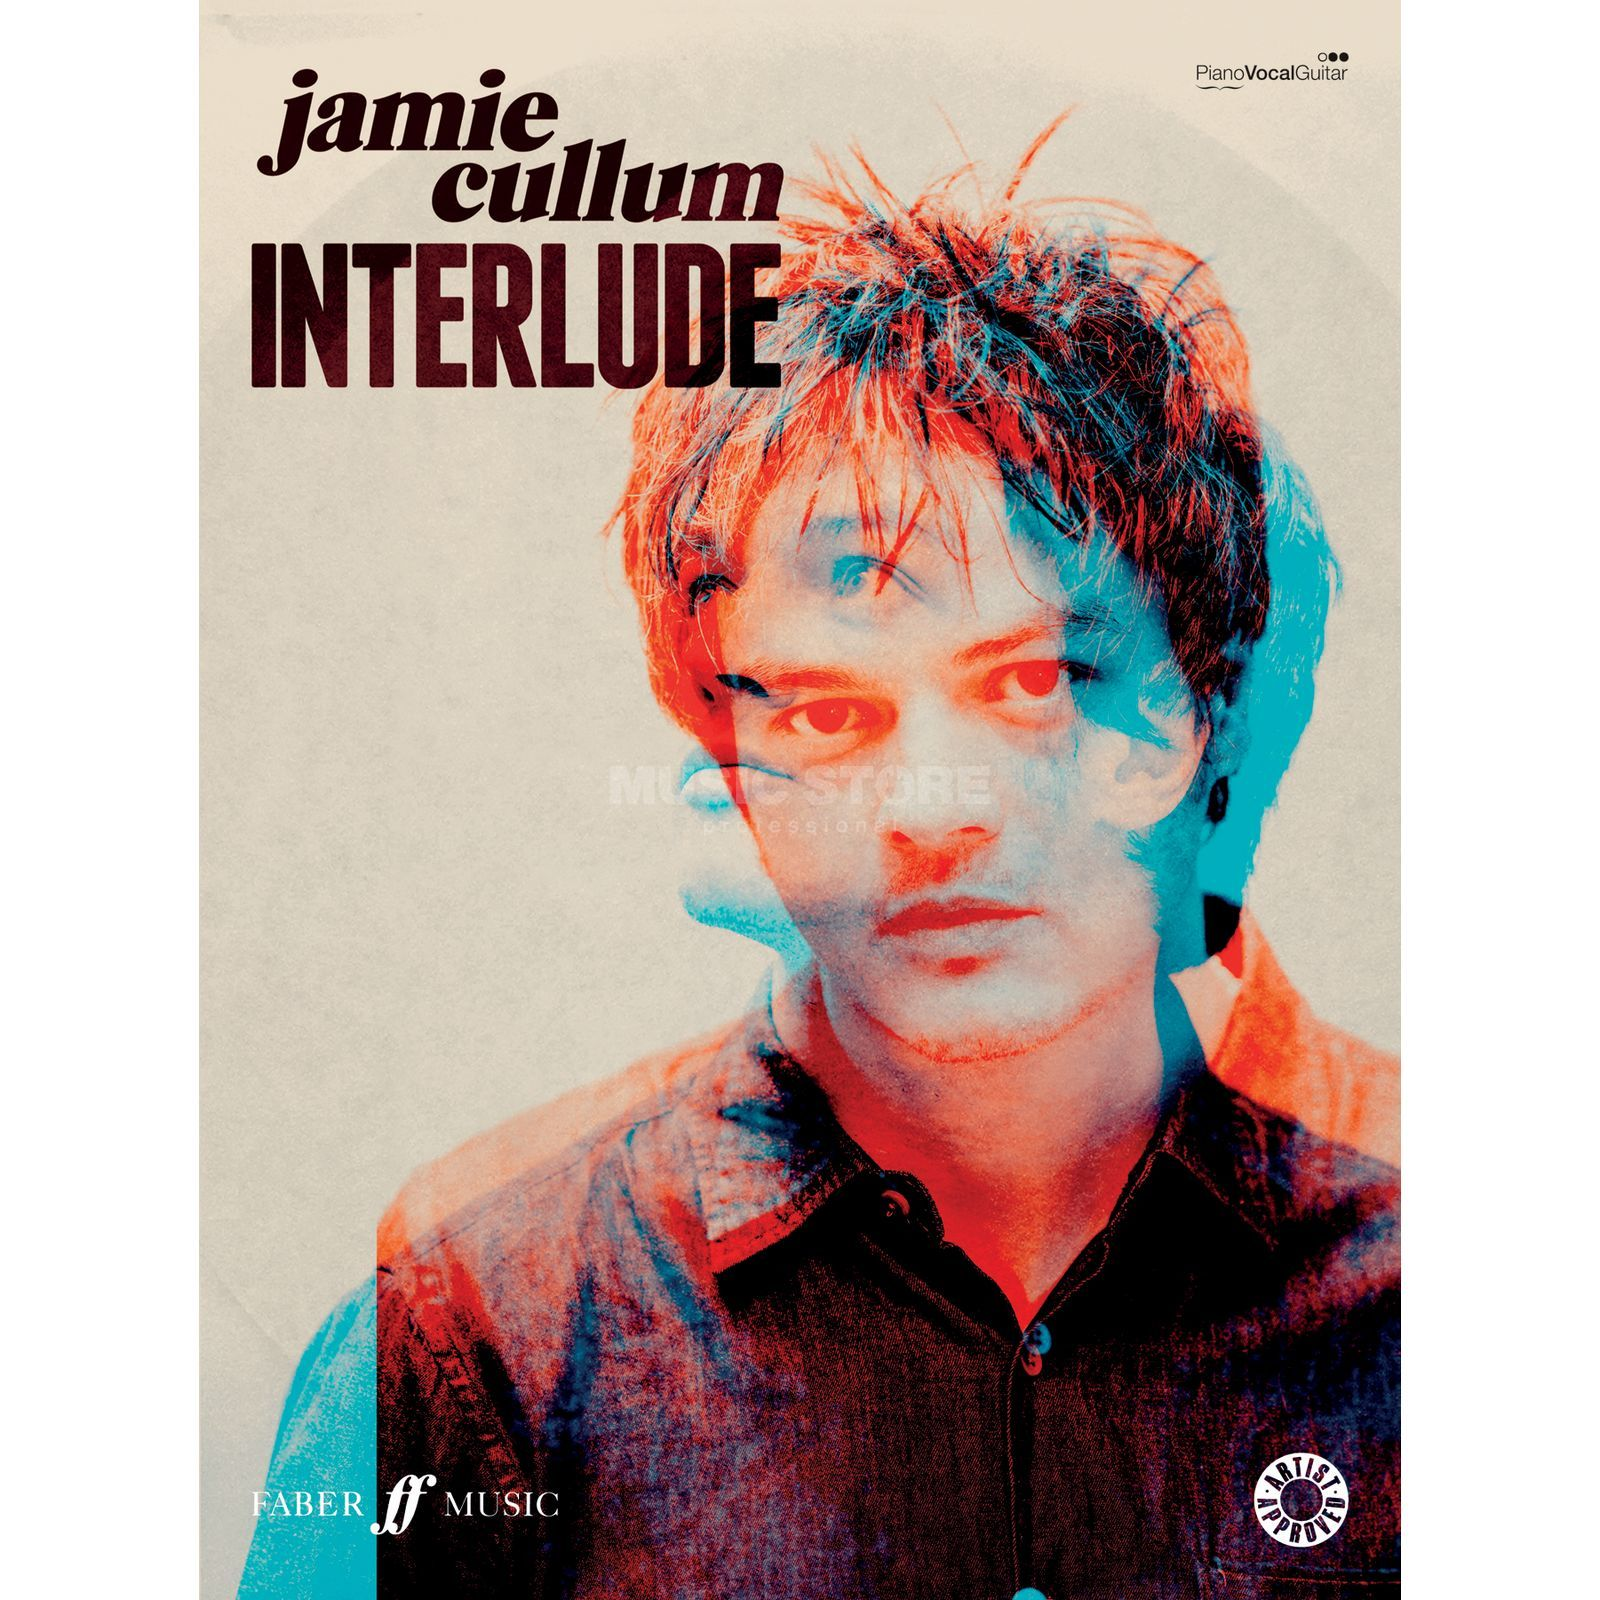 Faber Music Jamie Cullum: Interlude Product Image